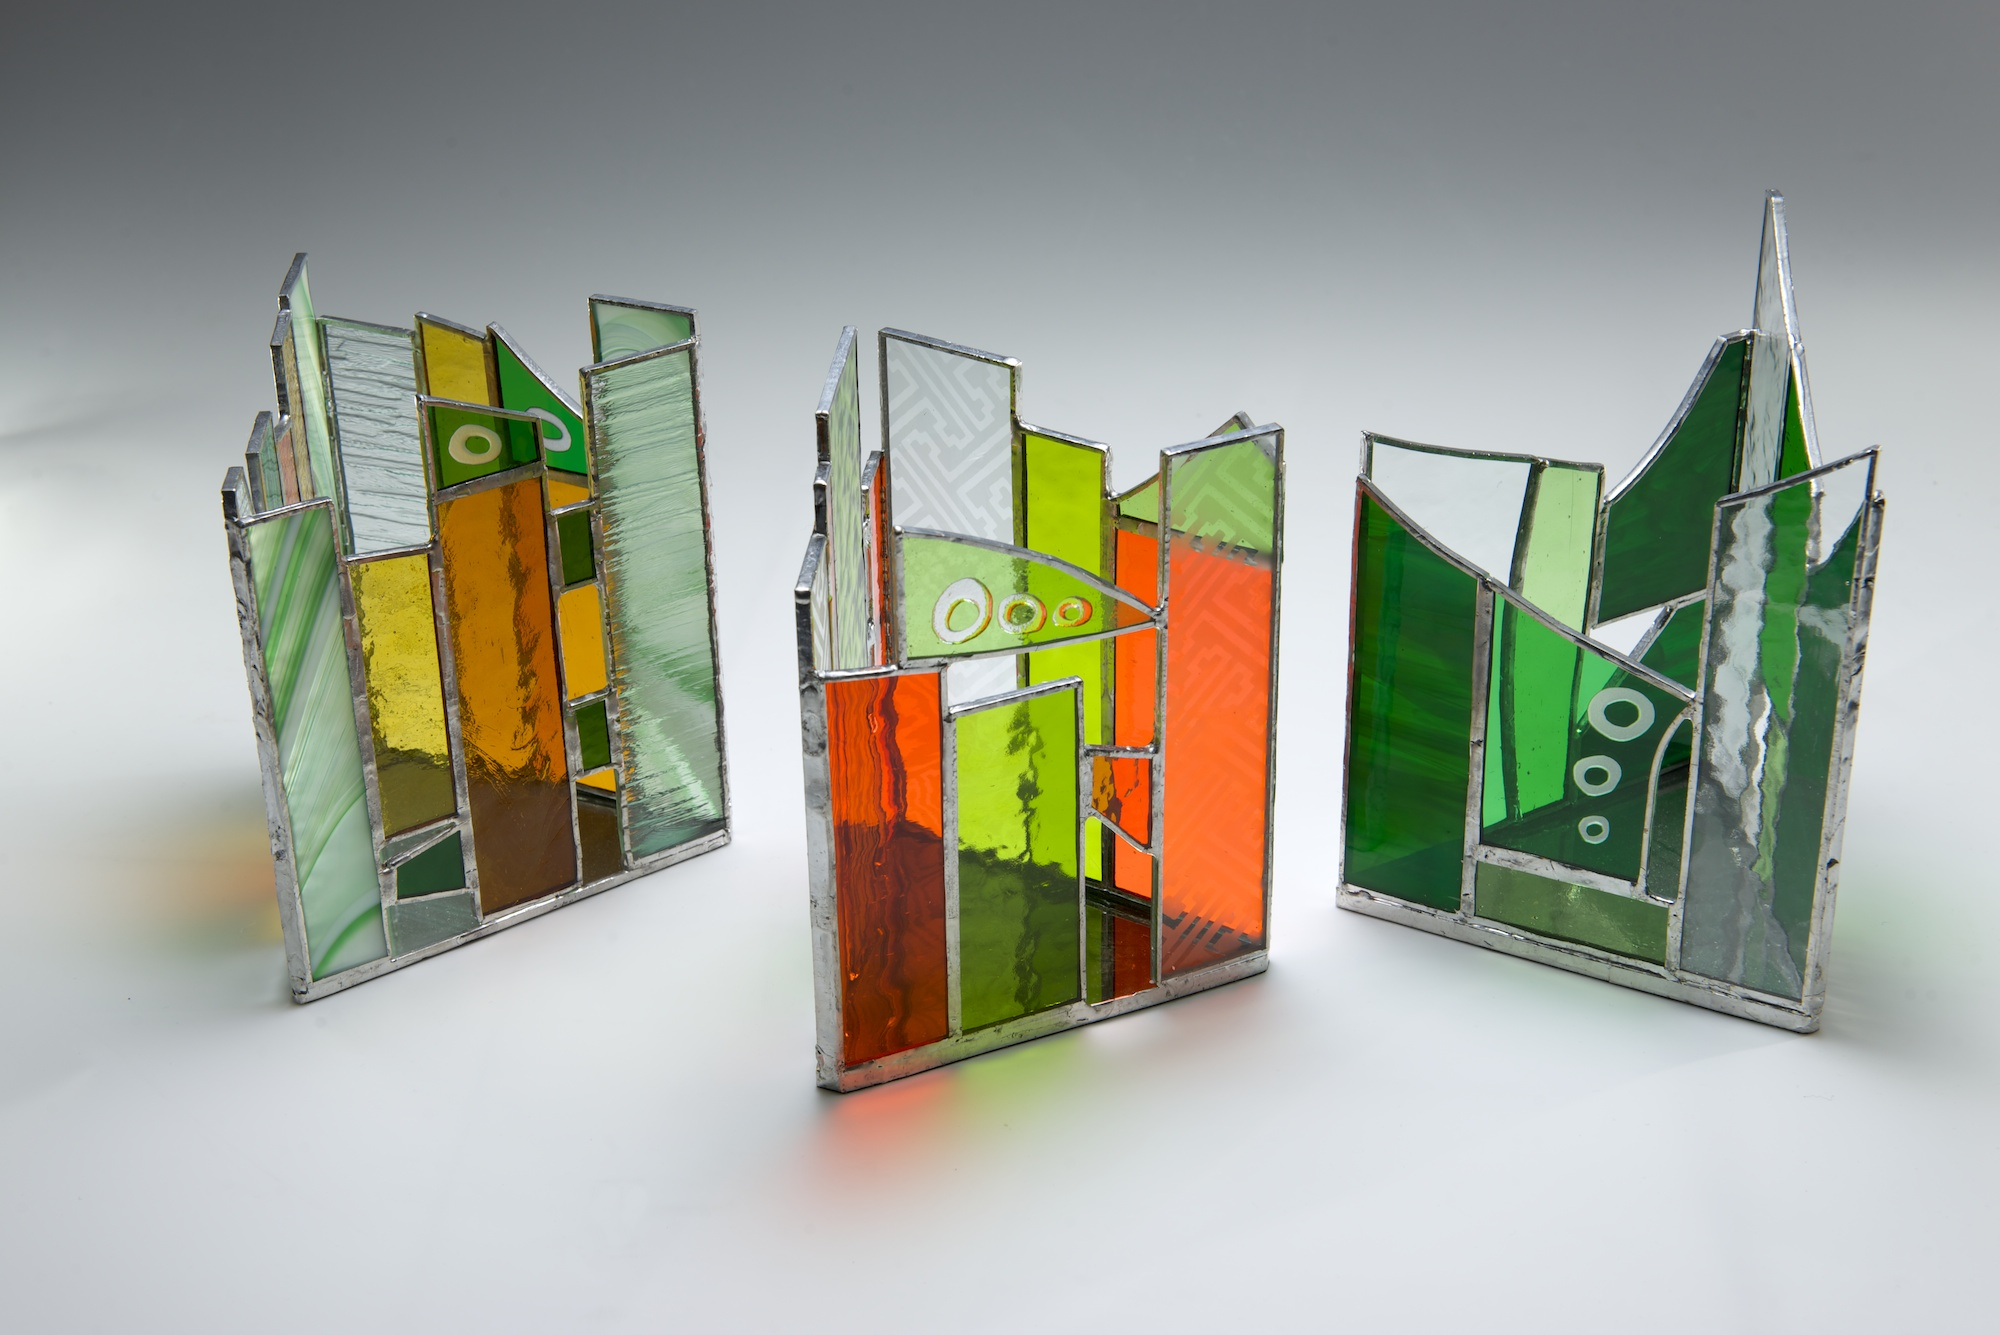 Sian Stanford, Glass http://www.sian.stanfordstudios.co.uk